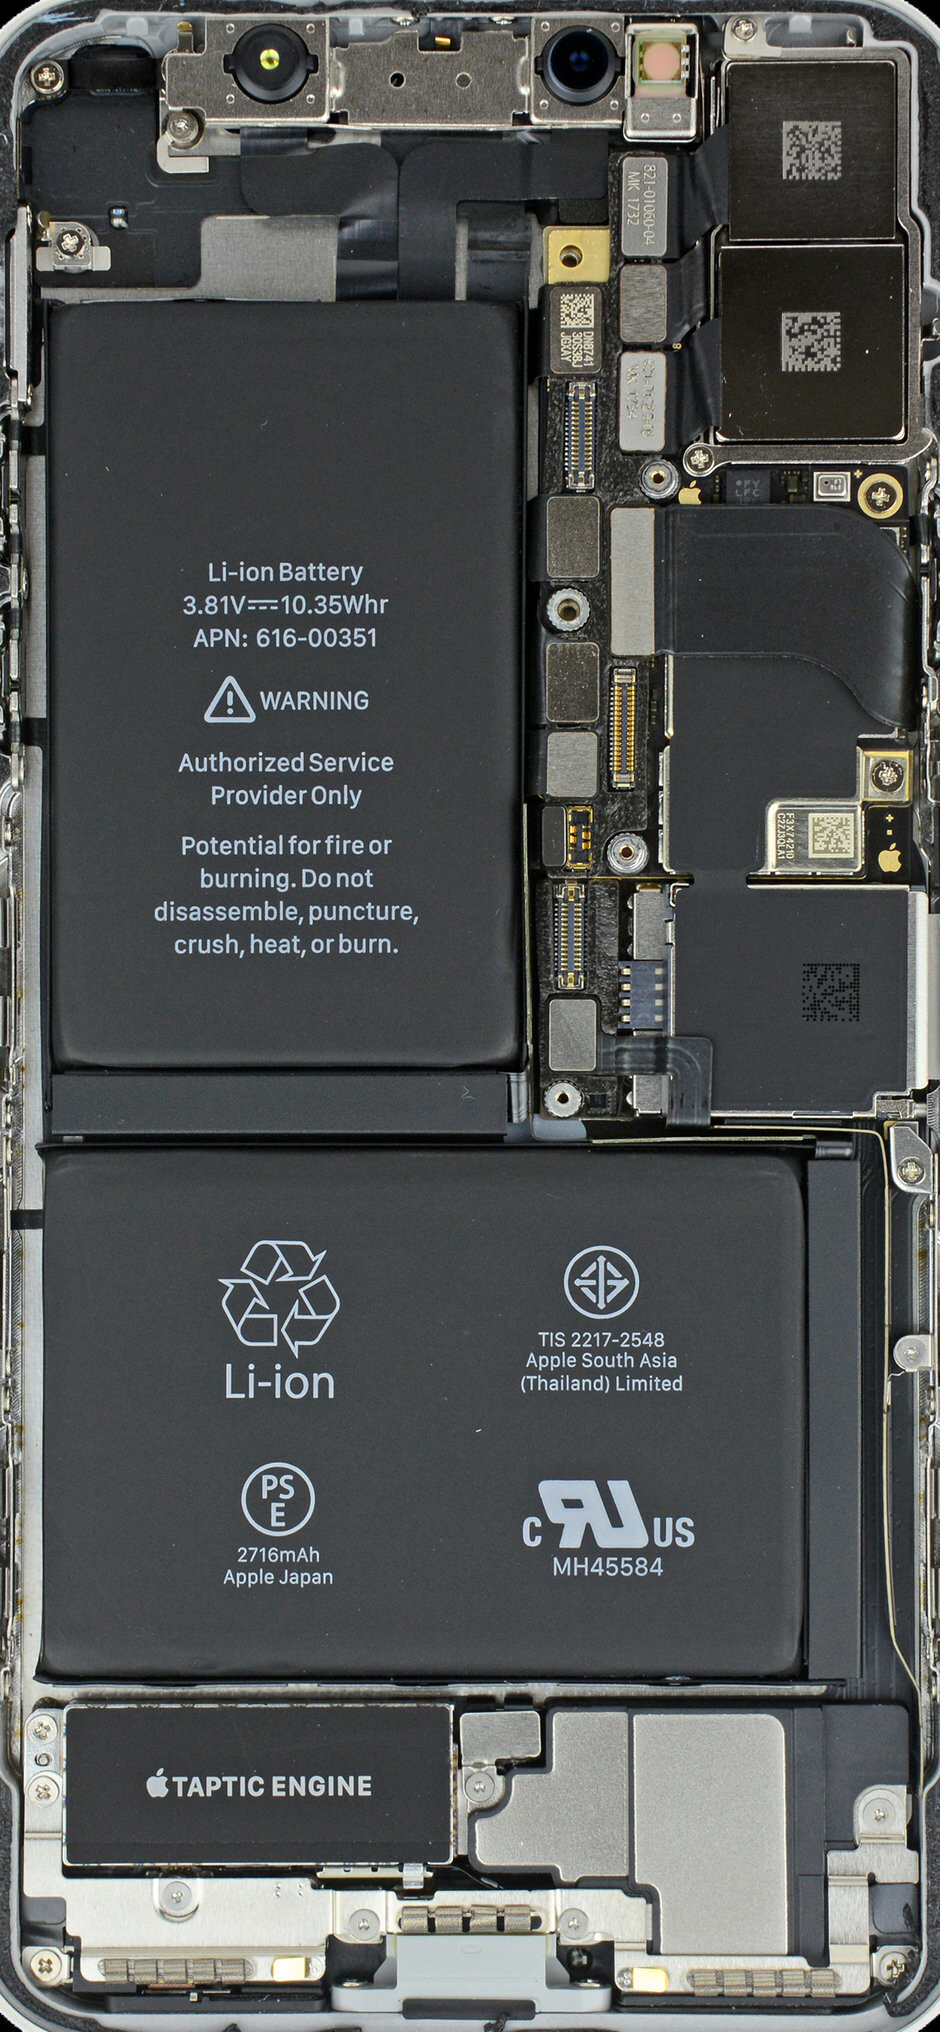 The iPhone X battery - With the iOS 12.1 update, Apple's processor throttling comes to the iPhone 8/Plus and X